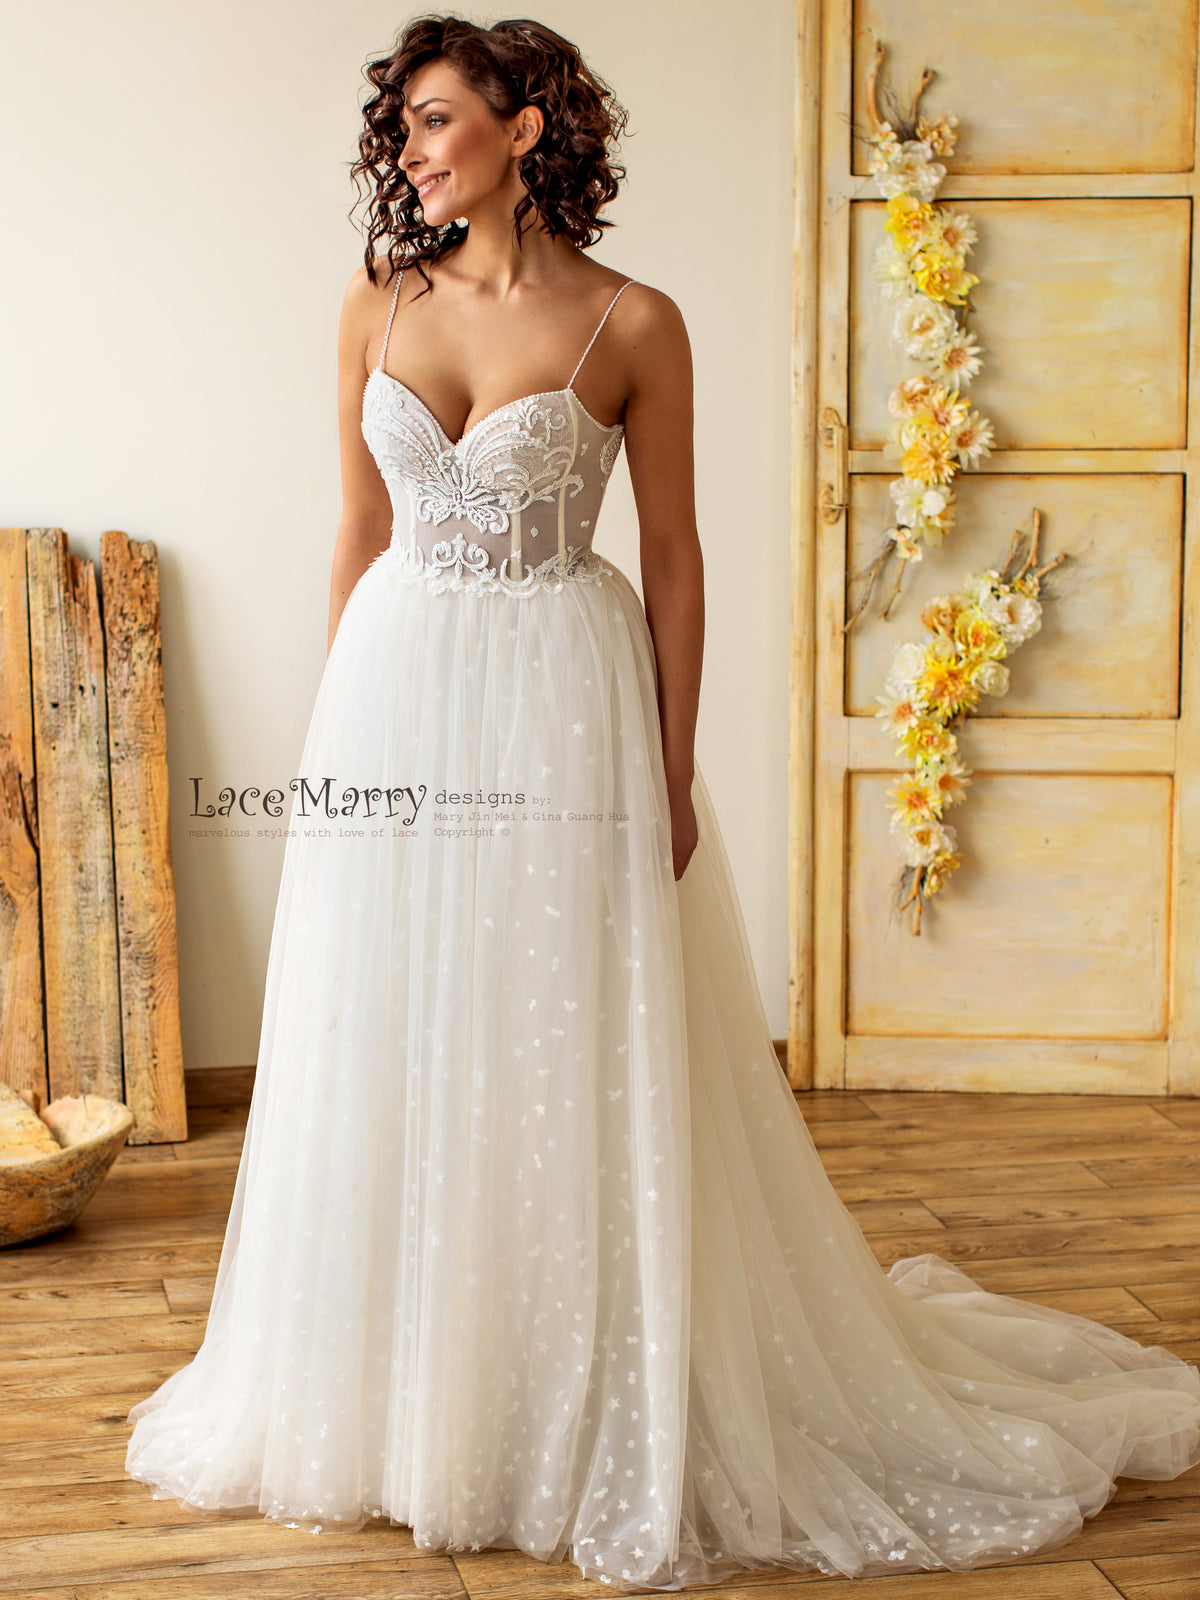 Bustier Wedding Dress with Gorgeous Beading Detail